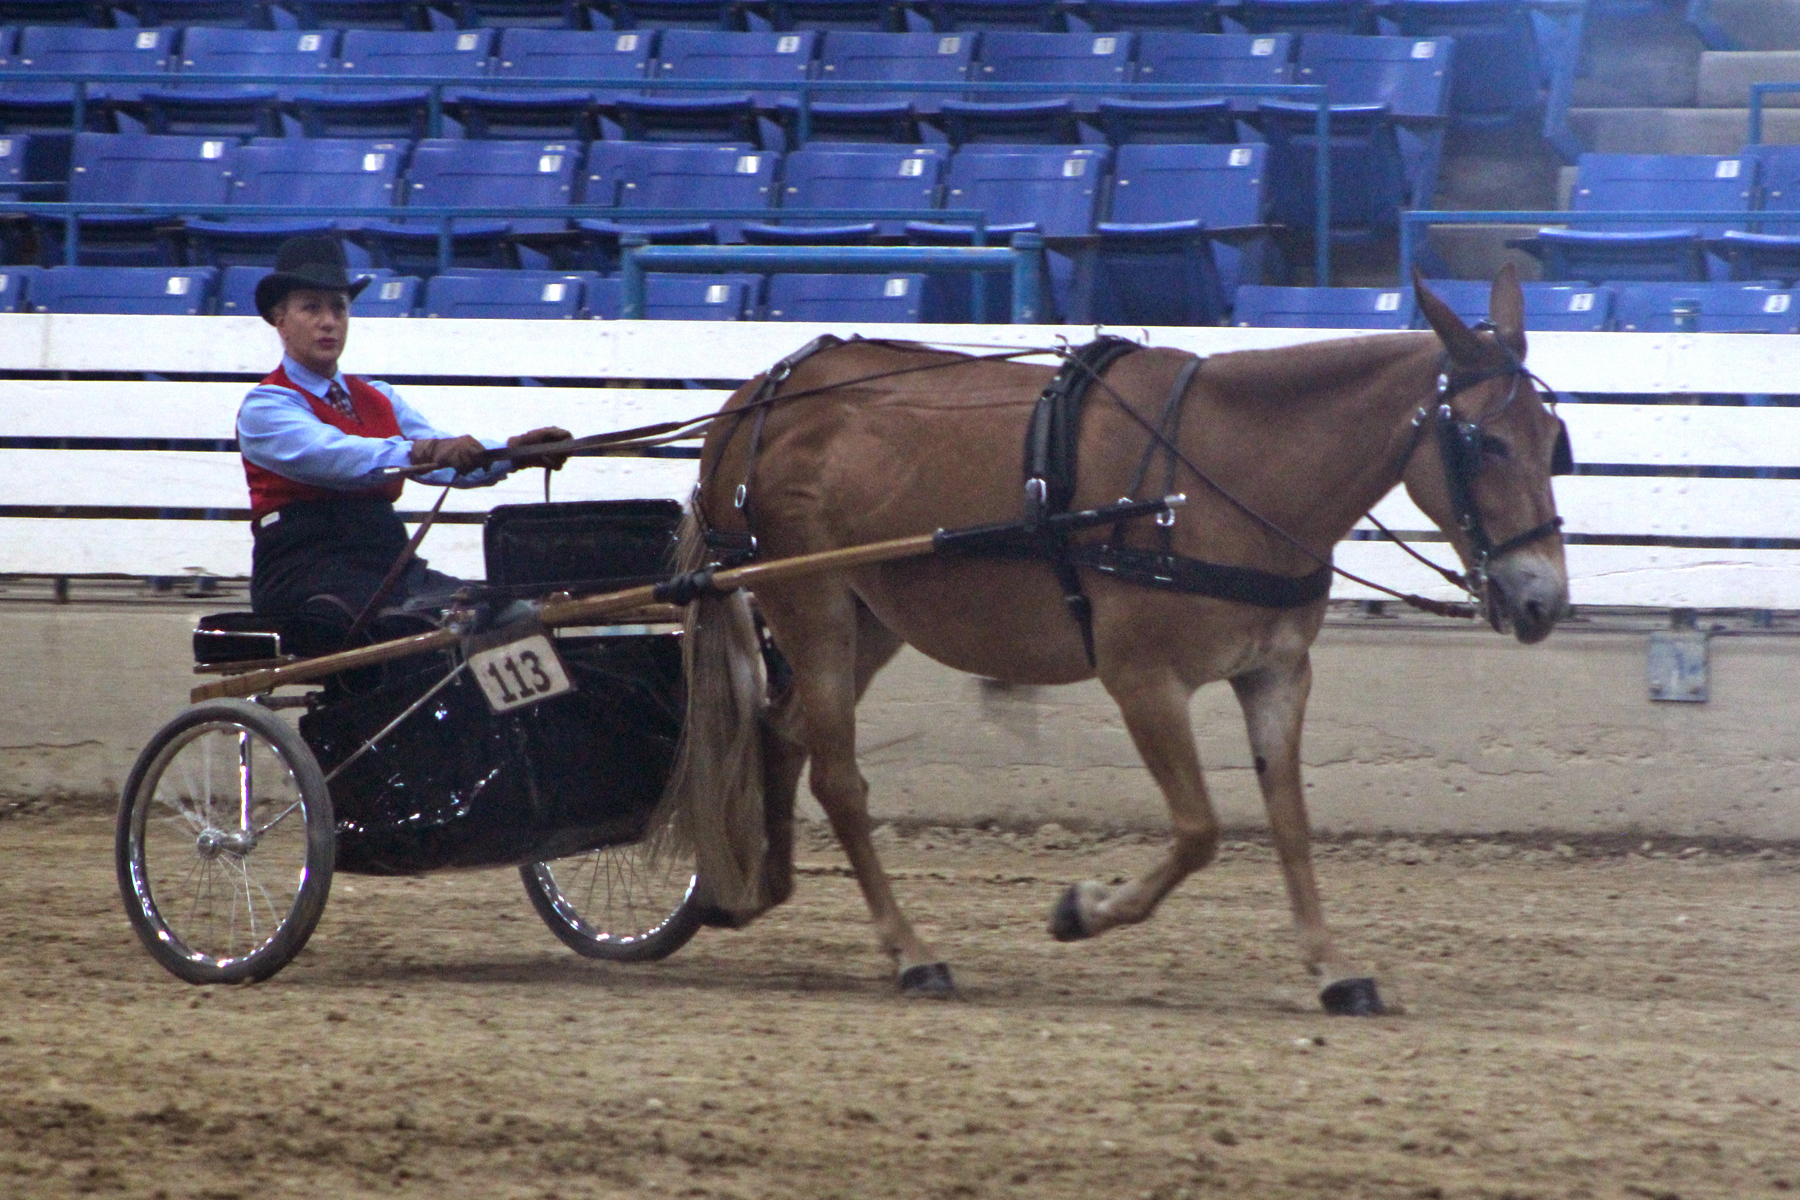 Perfect Percy and Shelley Reddish won National Champion Mule Obstacle Driving , National Champion Pleasure Driving Mule, and National Champion Mule Pleasure Driving Turnout